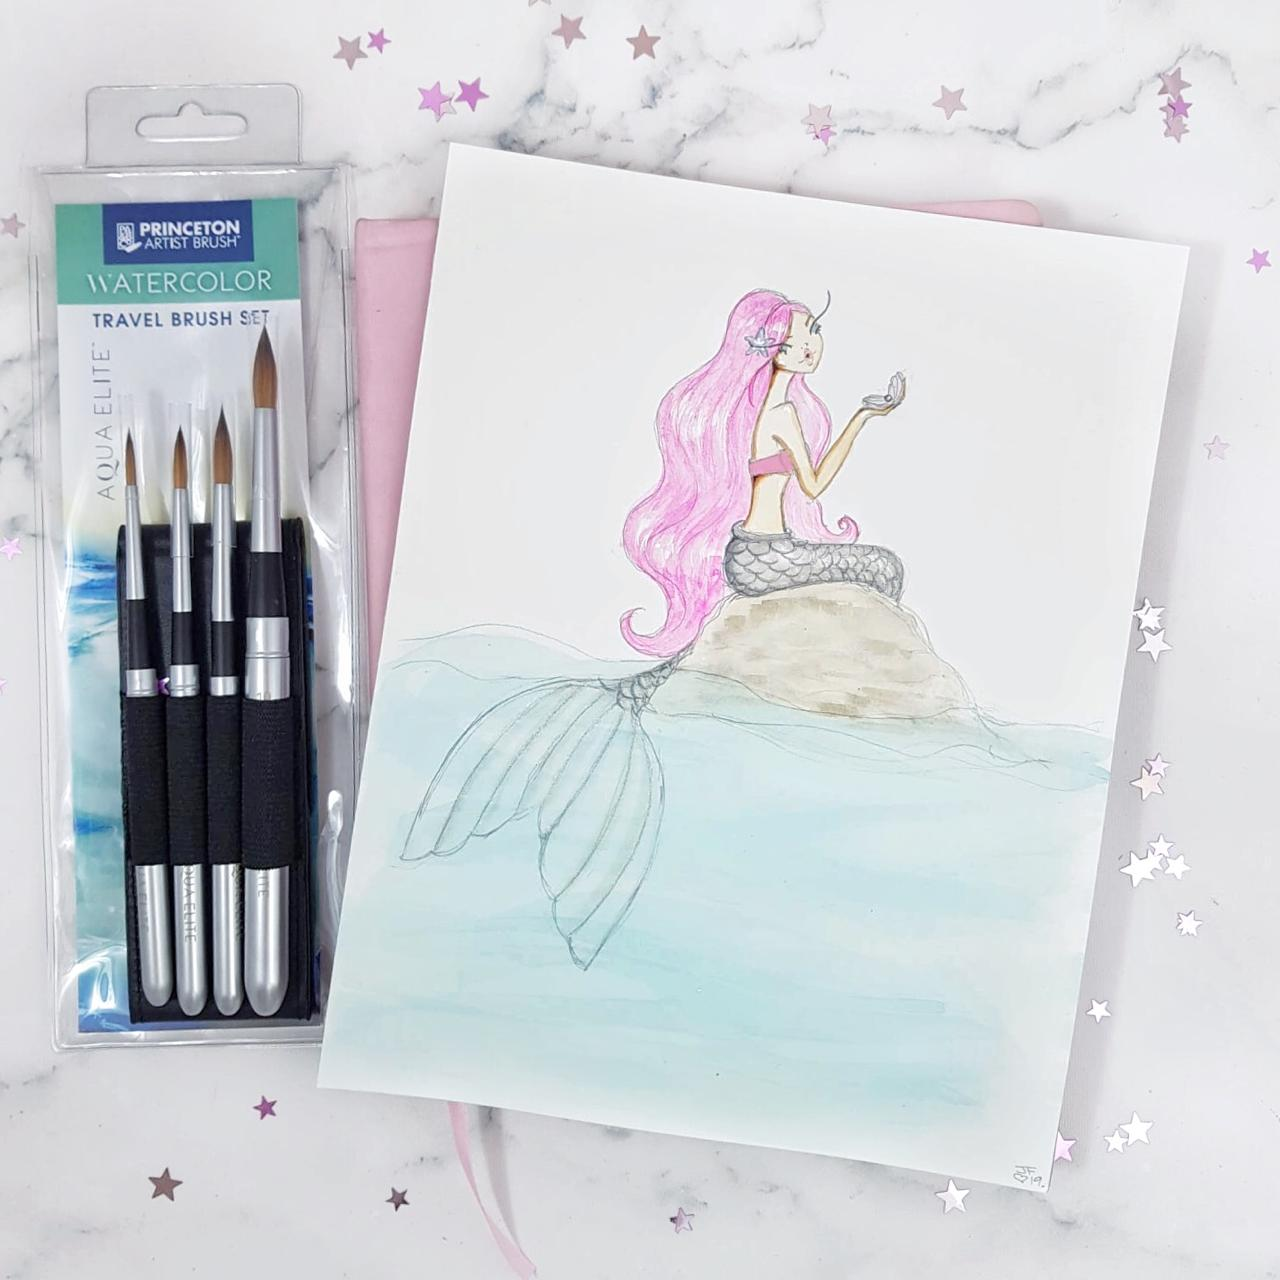 Princeton Artist Brush x Josefina Fernandez Illustrations Mermay Giveaway!